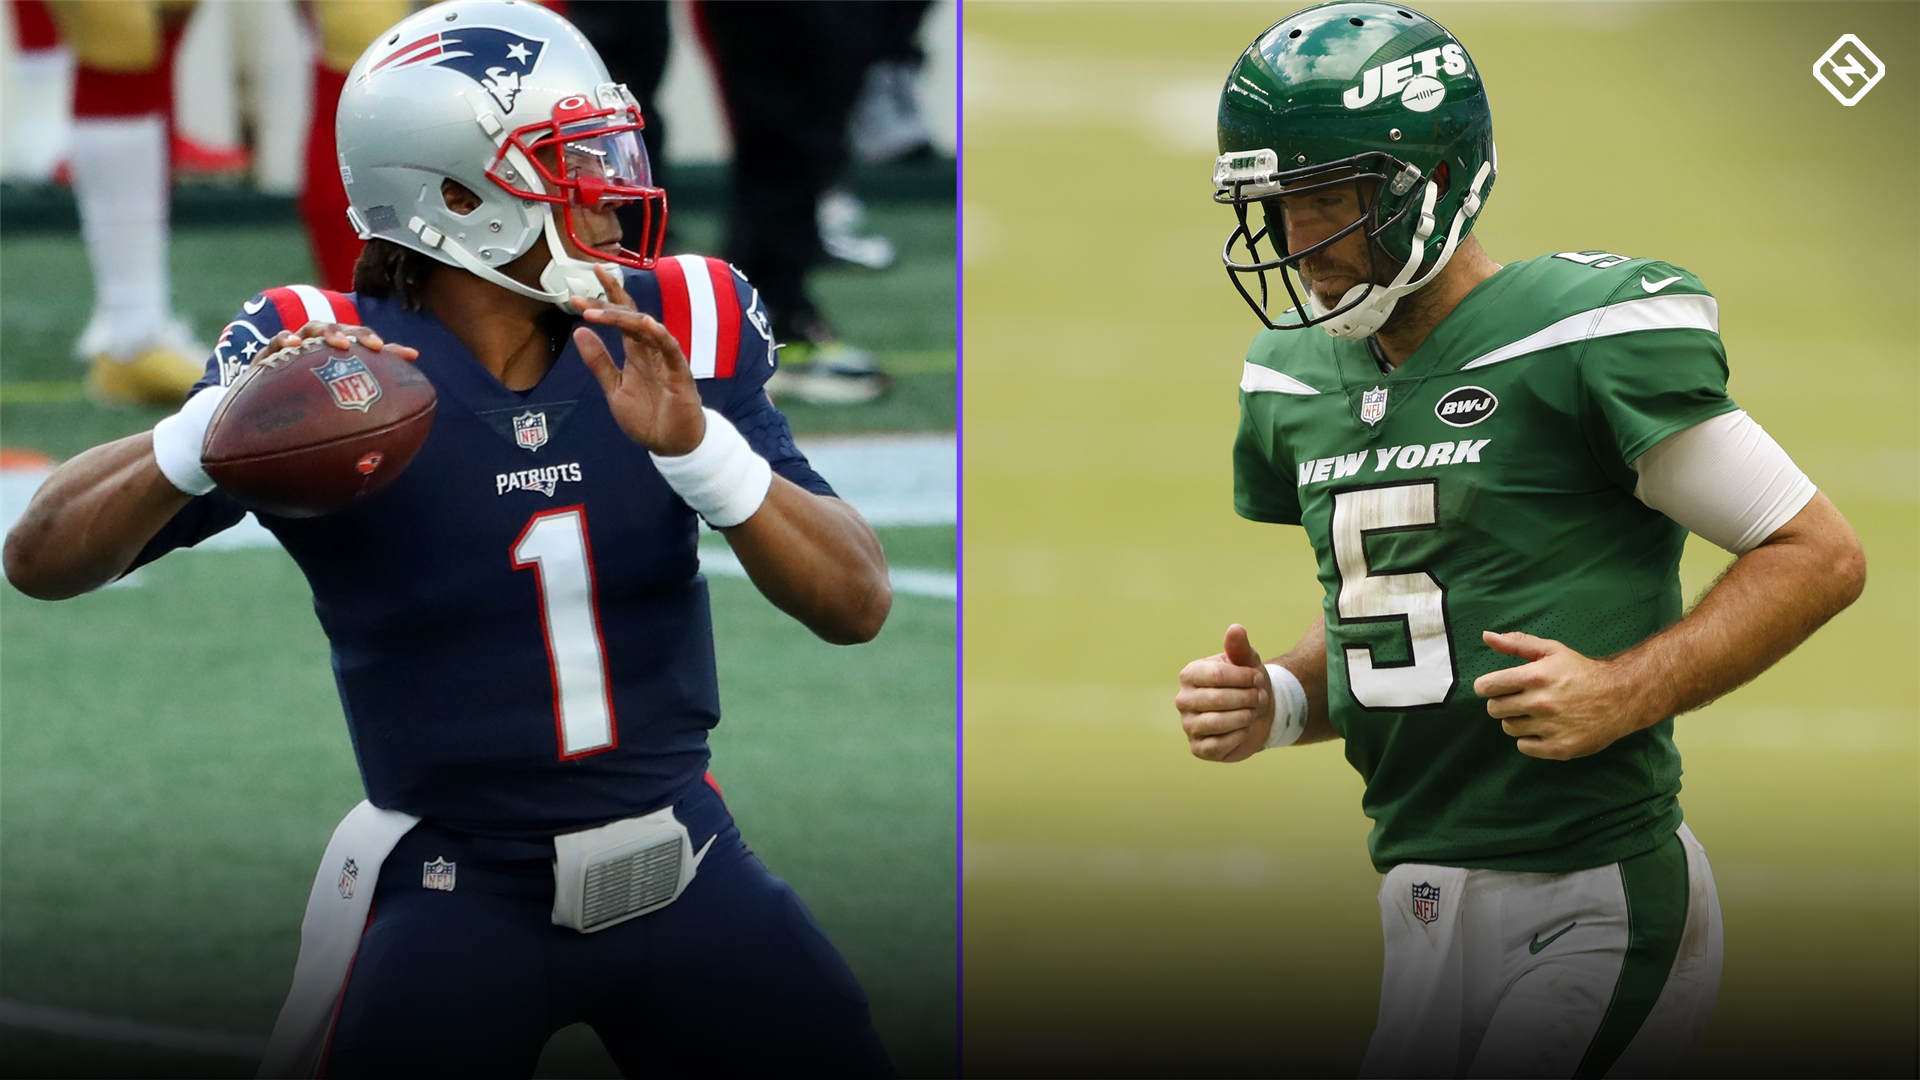 Patriots jets betting odds cricket betting astrology tips